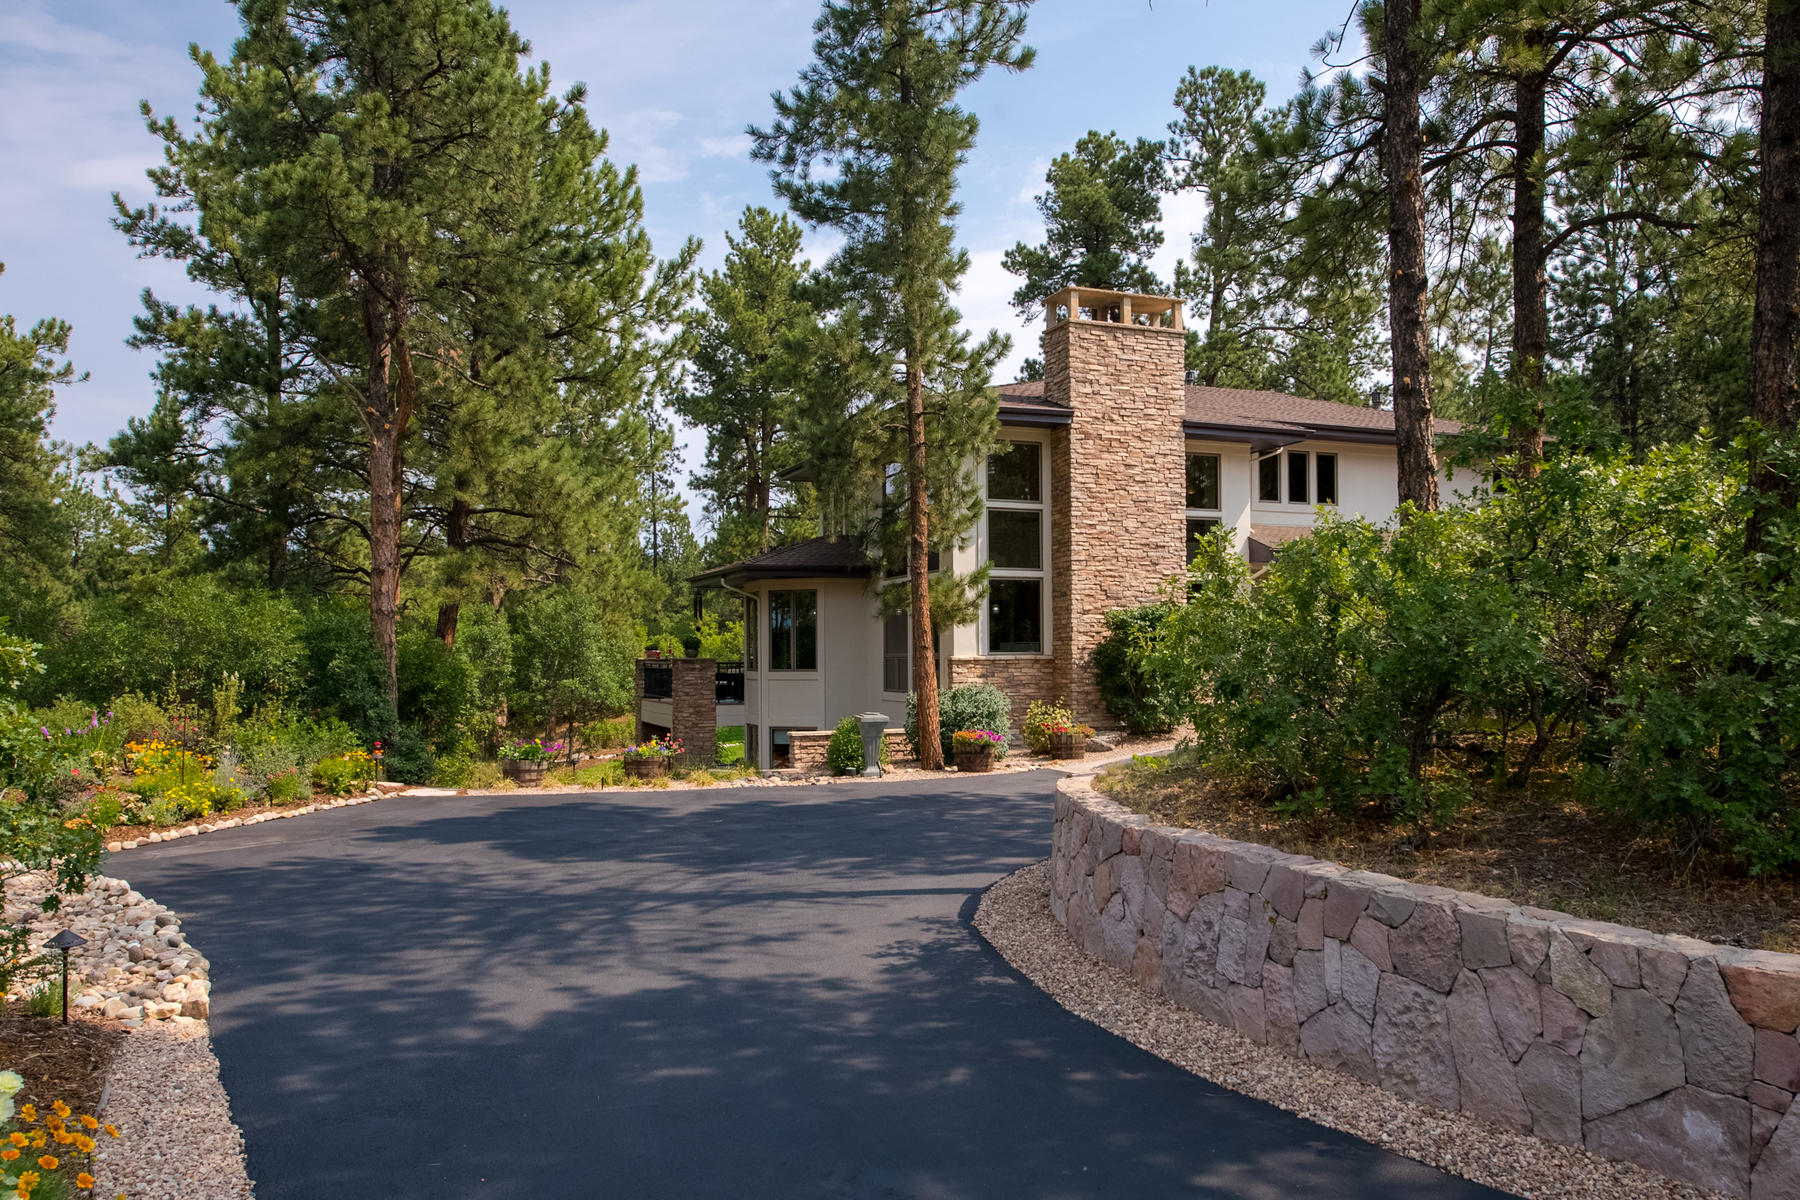 Single Family Home for Active at 967 Country Club Pkwy 967 Country Club Pkwy Castle Pines, Colorado 80108 United States